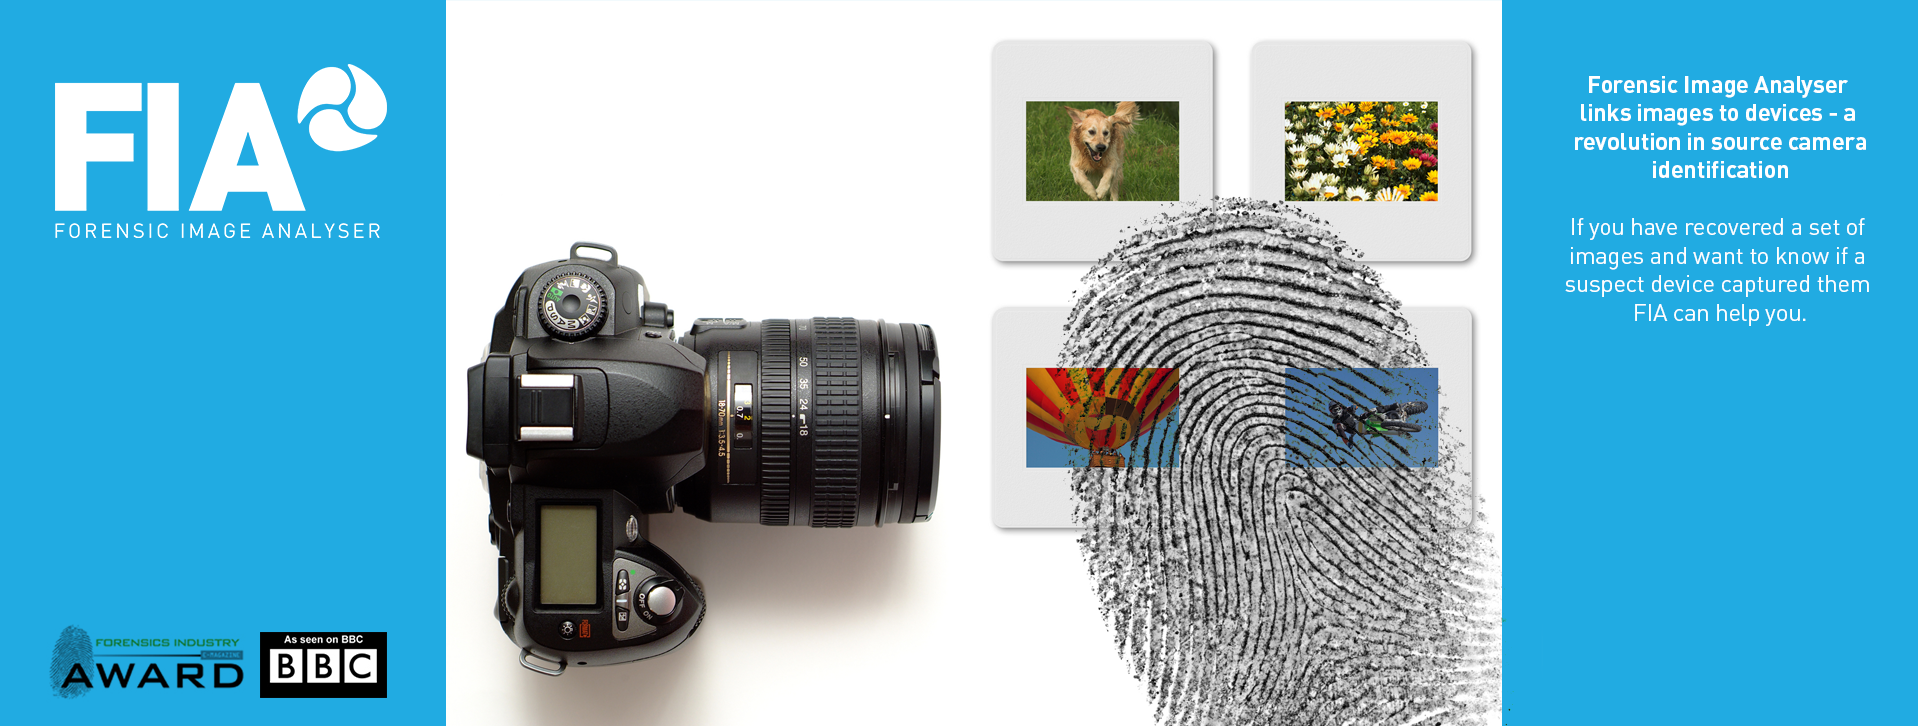 Source Camera Identification Using Forensic Image Analyser